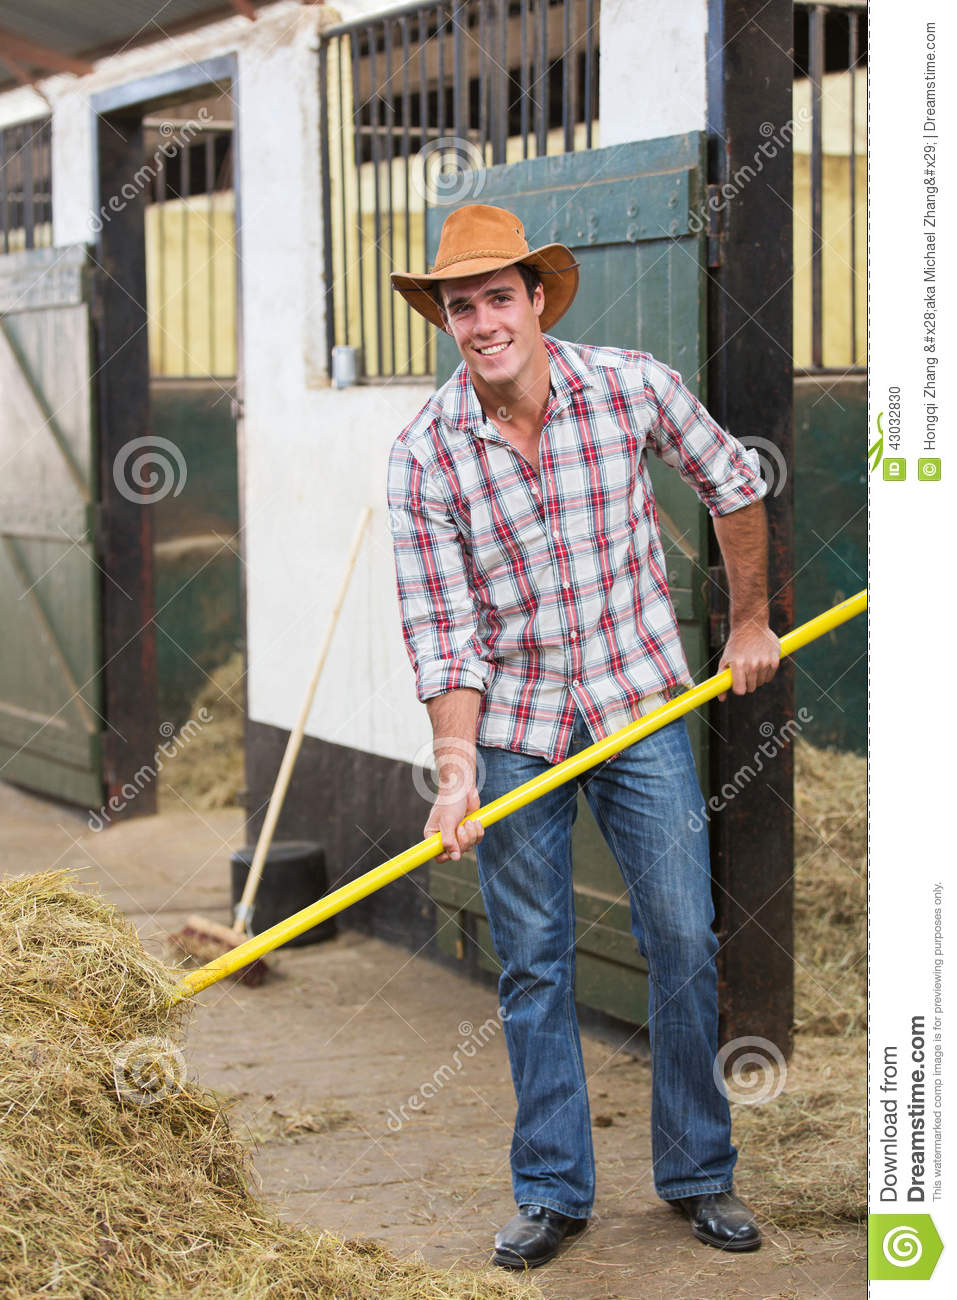 Cowboy Working Stable Stock Photo Image 43032830